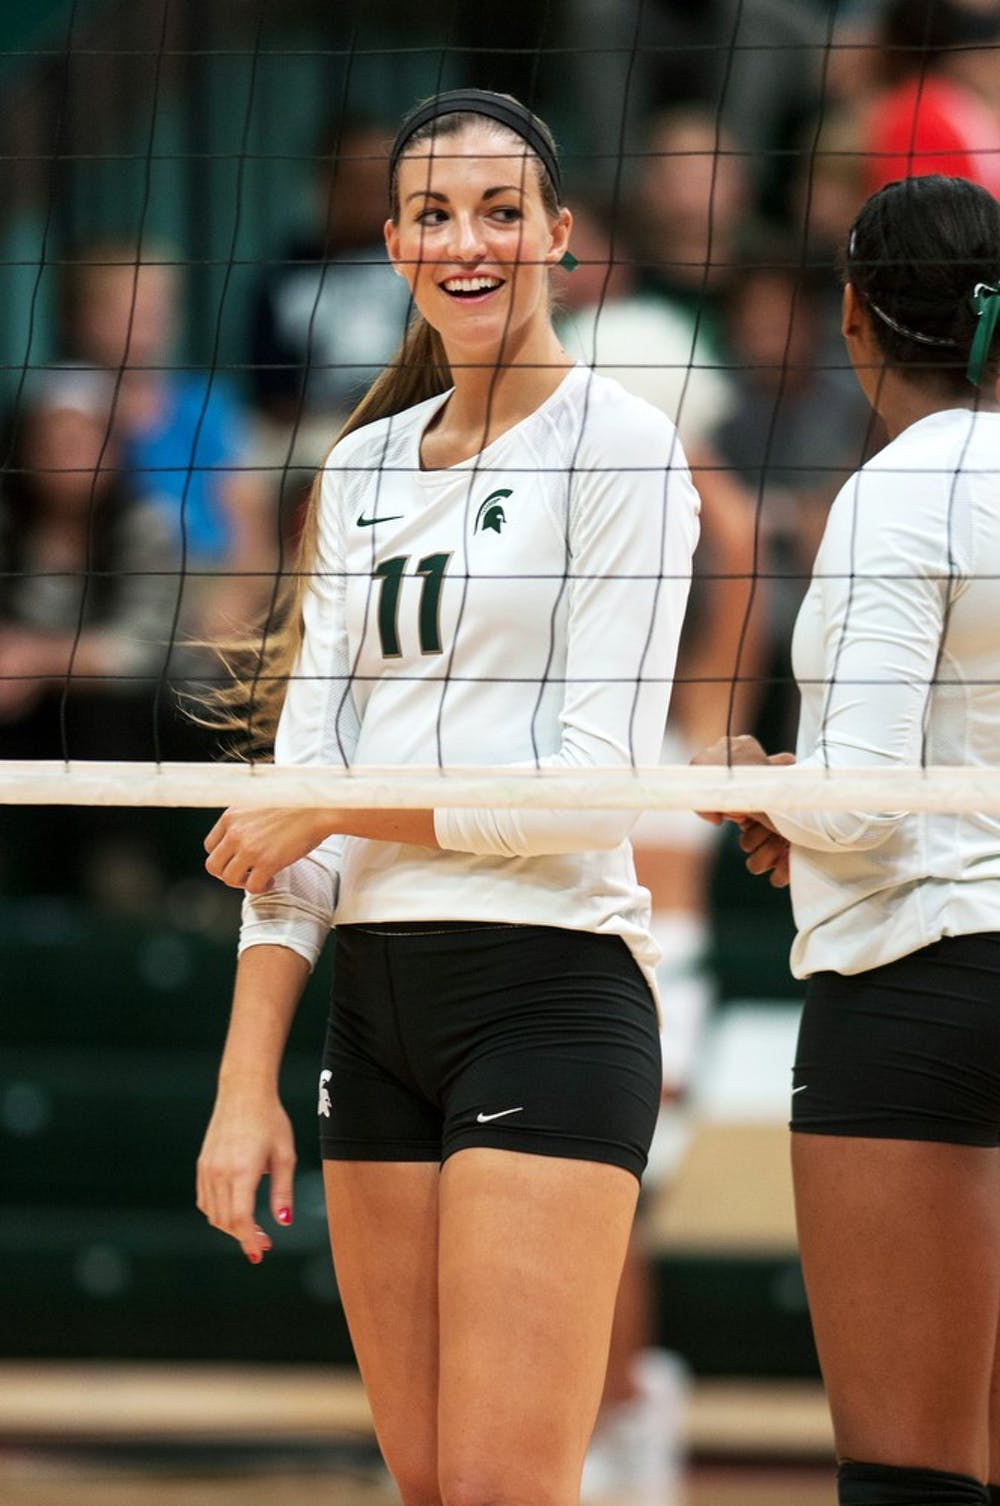 "<p>Freshman Chloe Reinig gets congratulated on a play, Sept. 21, 2013, at Jenison Field House. <span class=""caps"">MSU</span> beat Cincinnati, 3-0. Margaux Forster/The State News</p>"